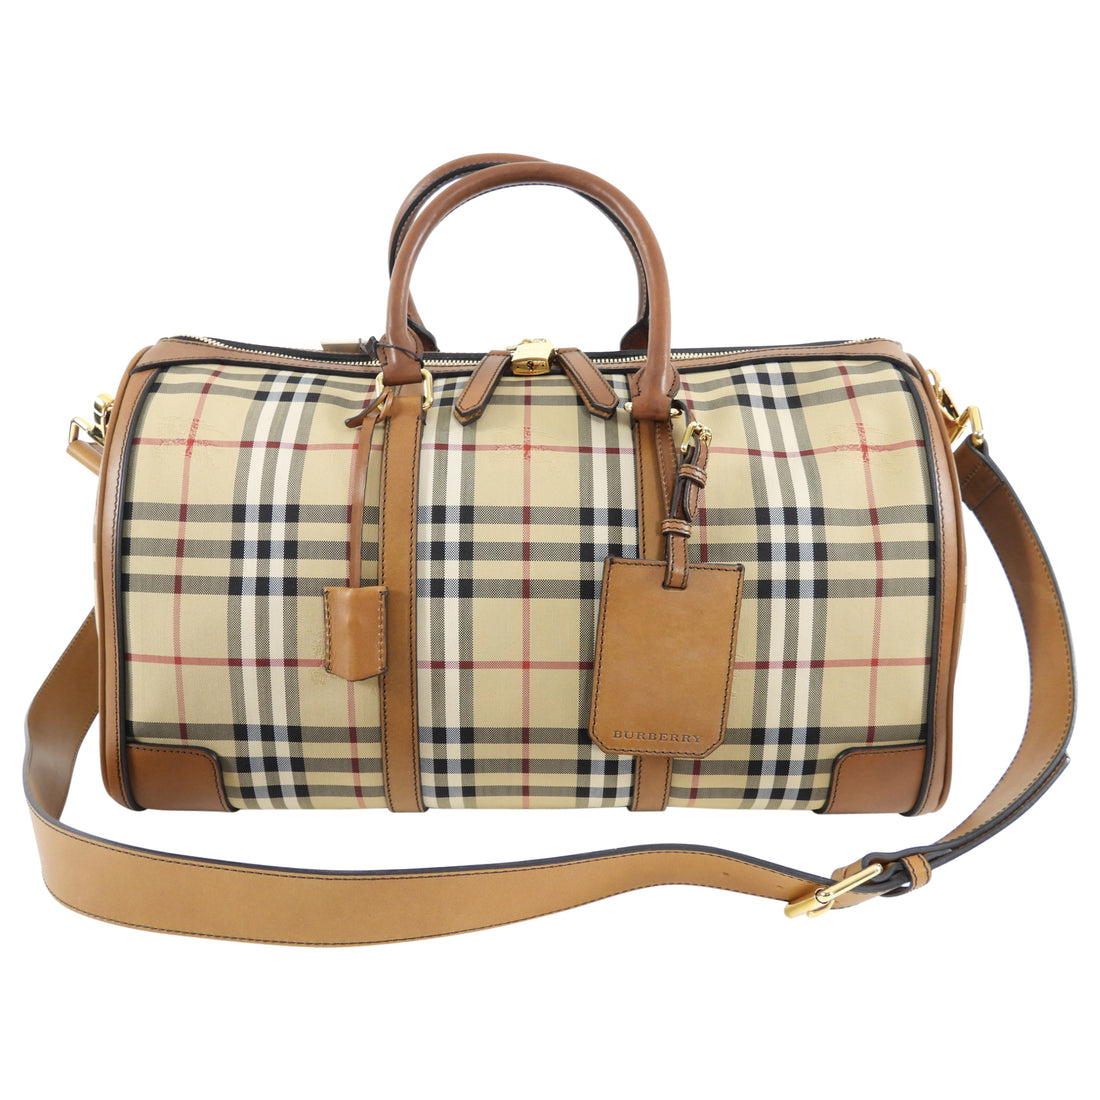 Burberry Horseferry Check Large Alchester Holdall Duffle Bag